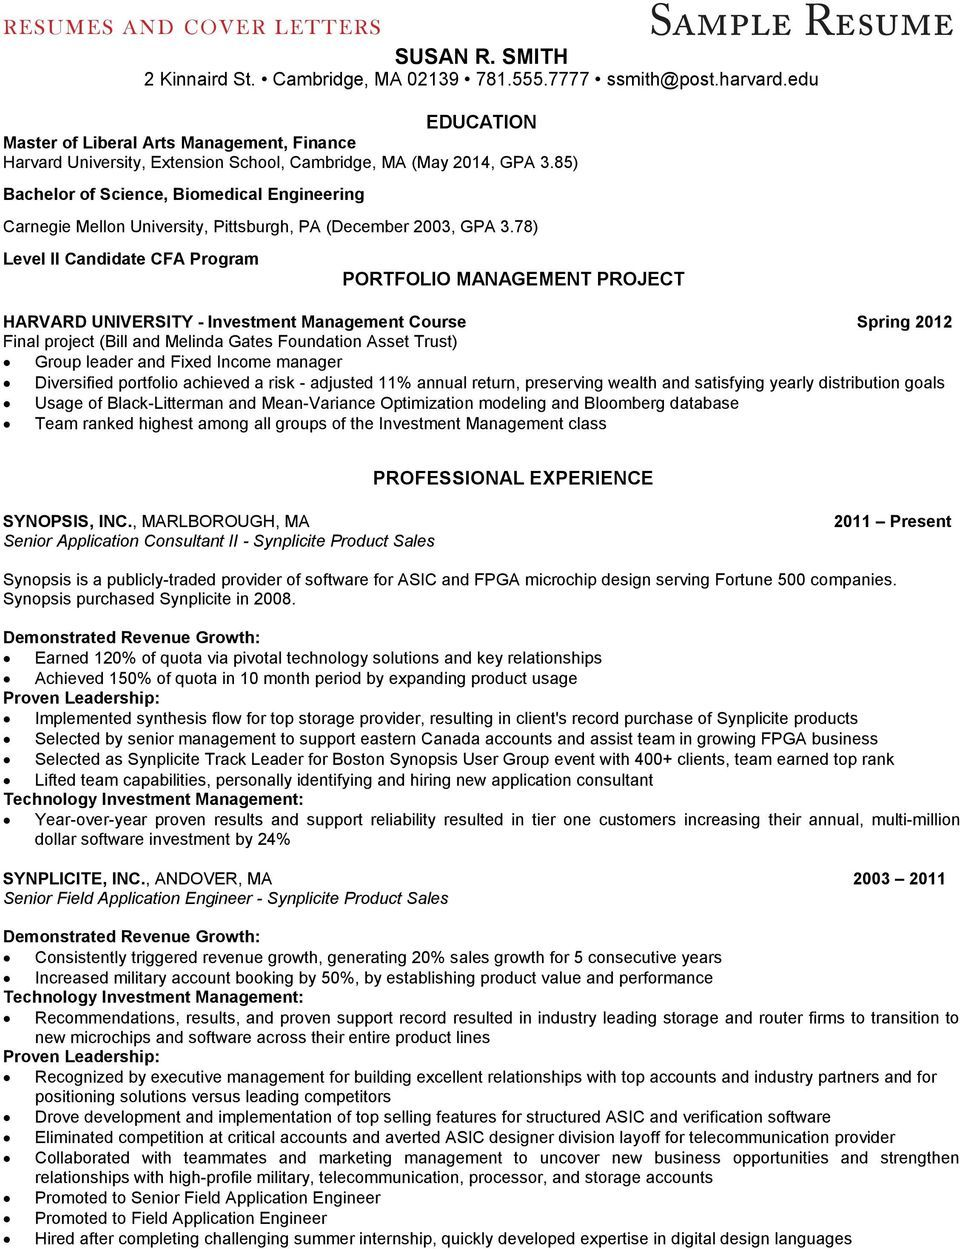 harvard extension school resume resumes and cover letters on resu university nyu creative Resume Harvard University Extension School Resume